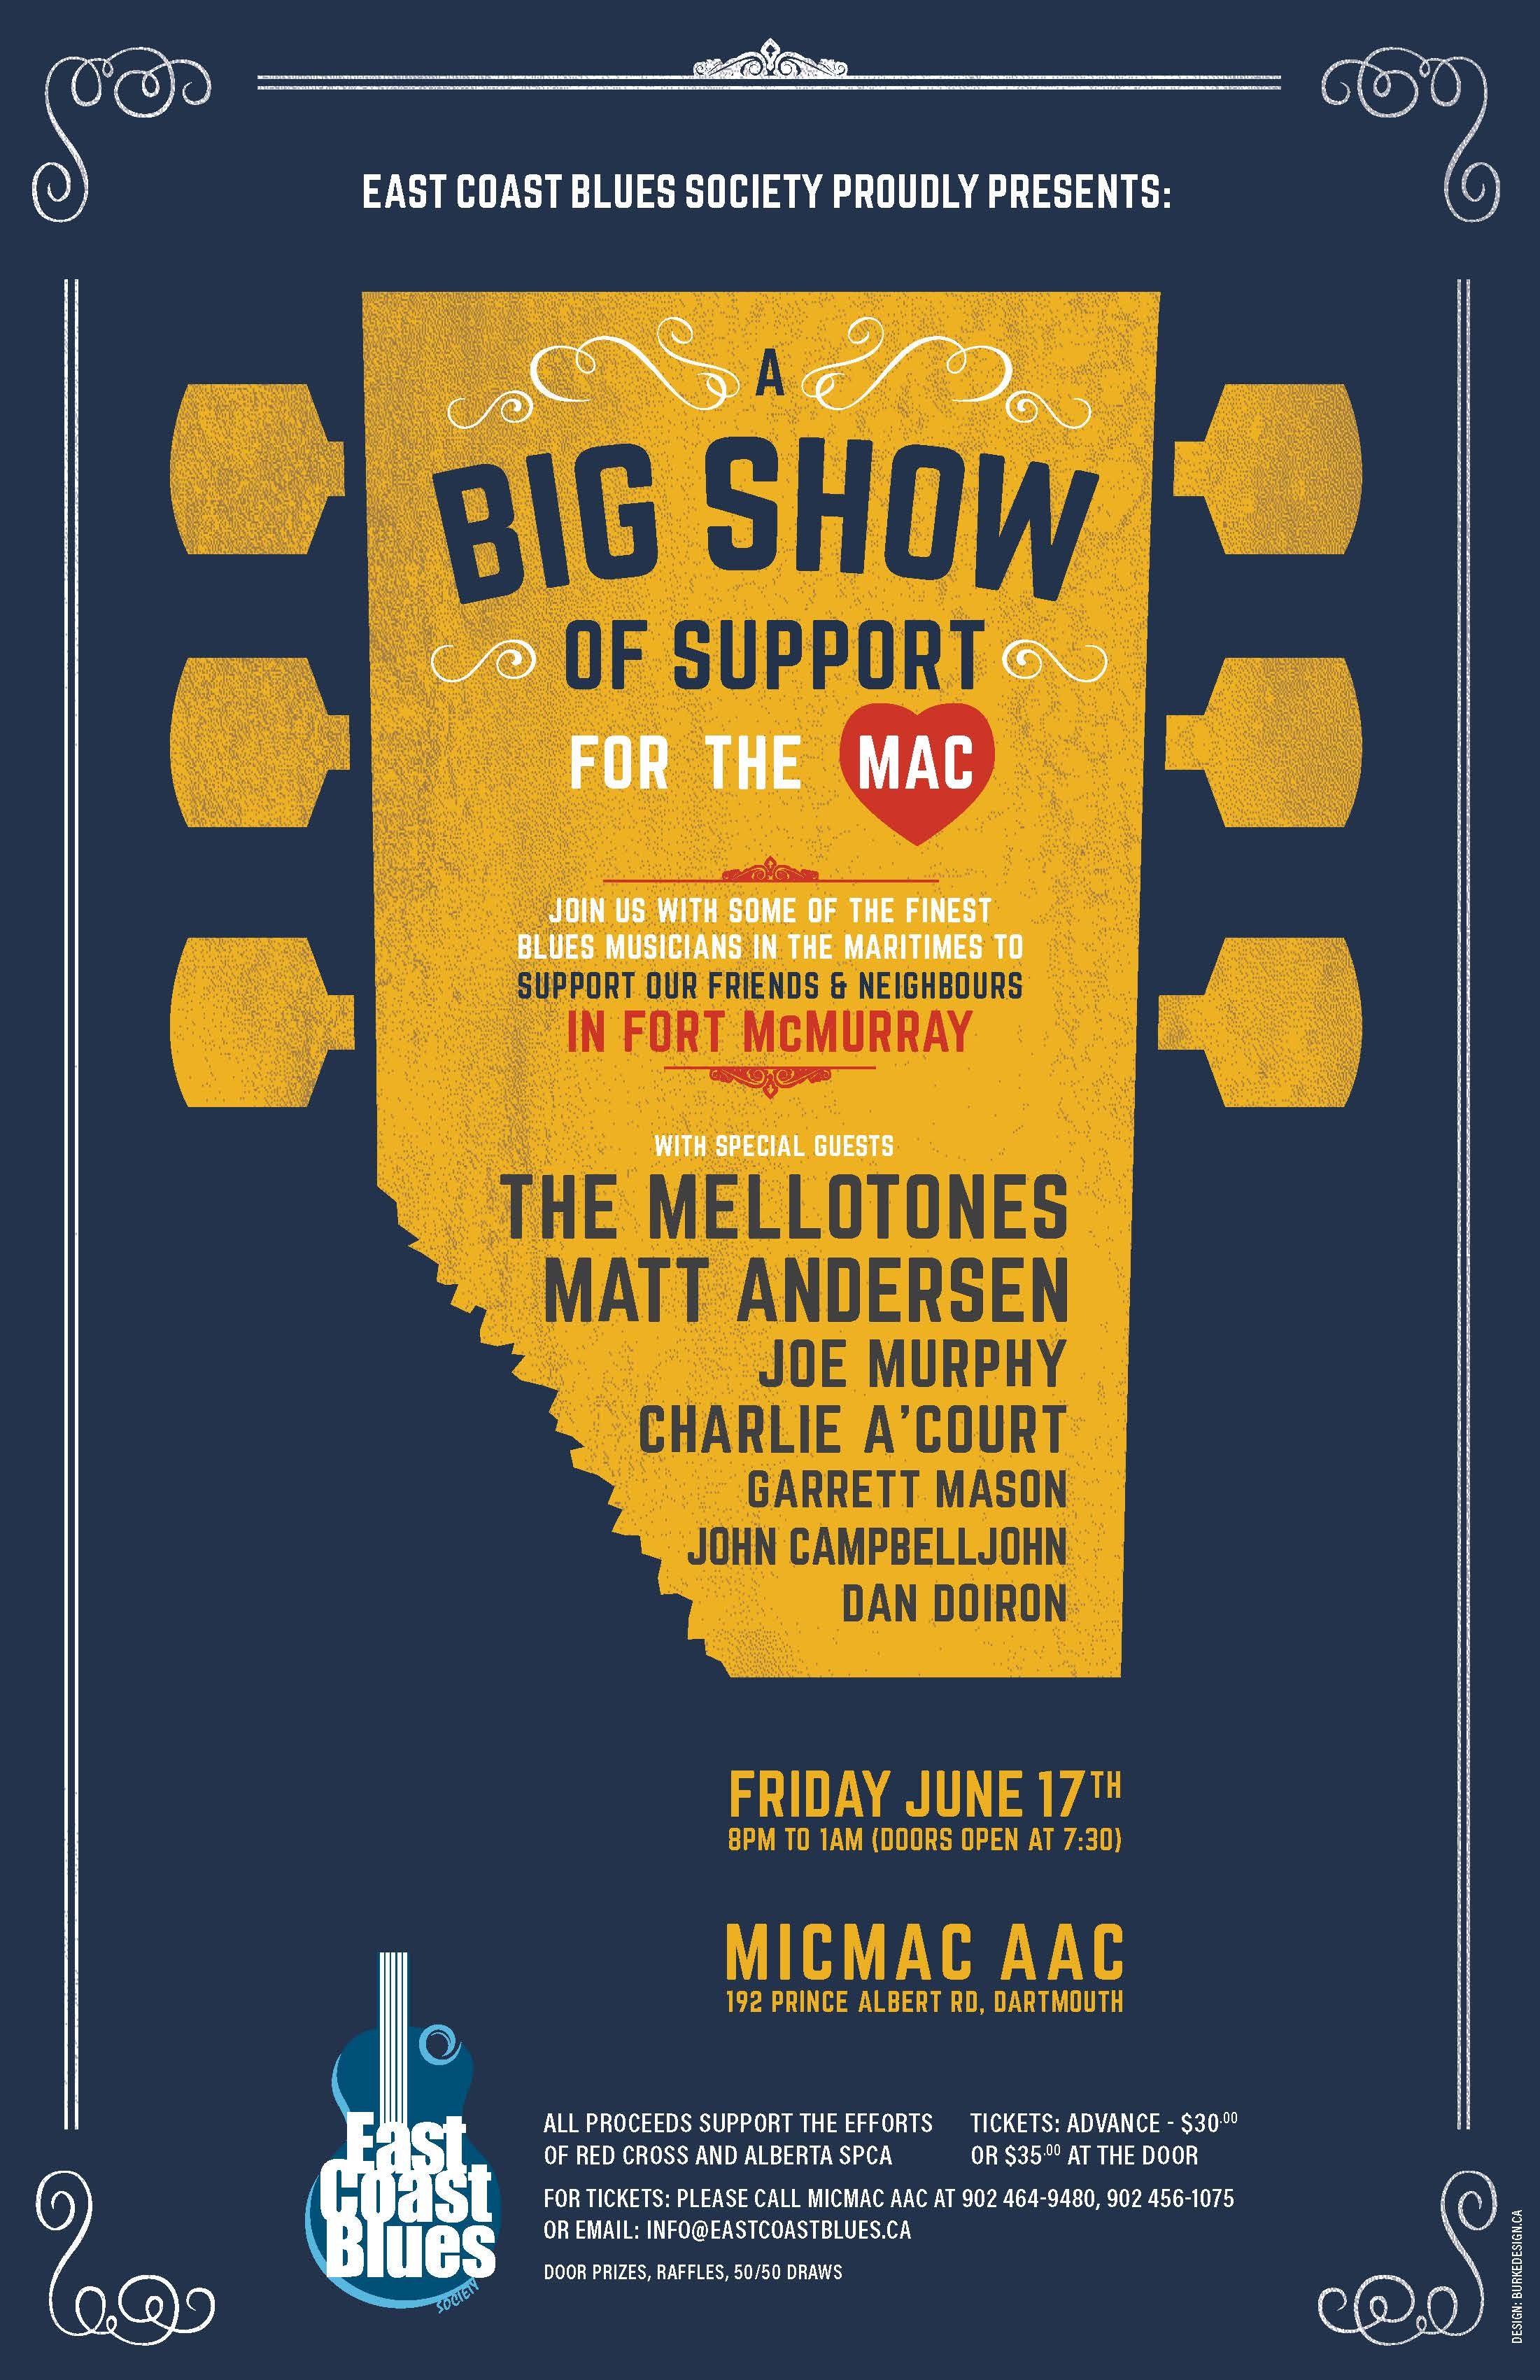 A Big Show Of Support For Mac with special guests The Mellotones